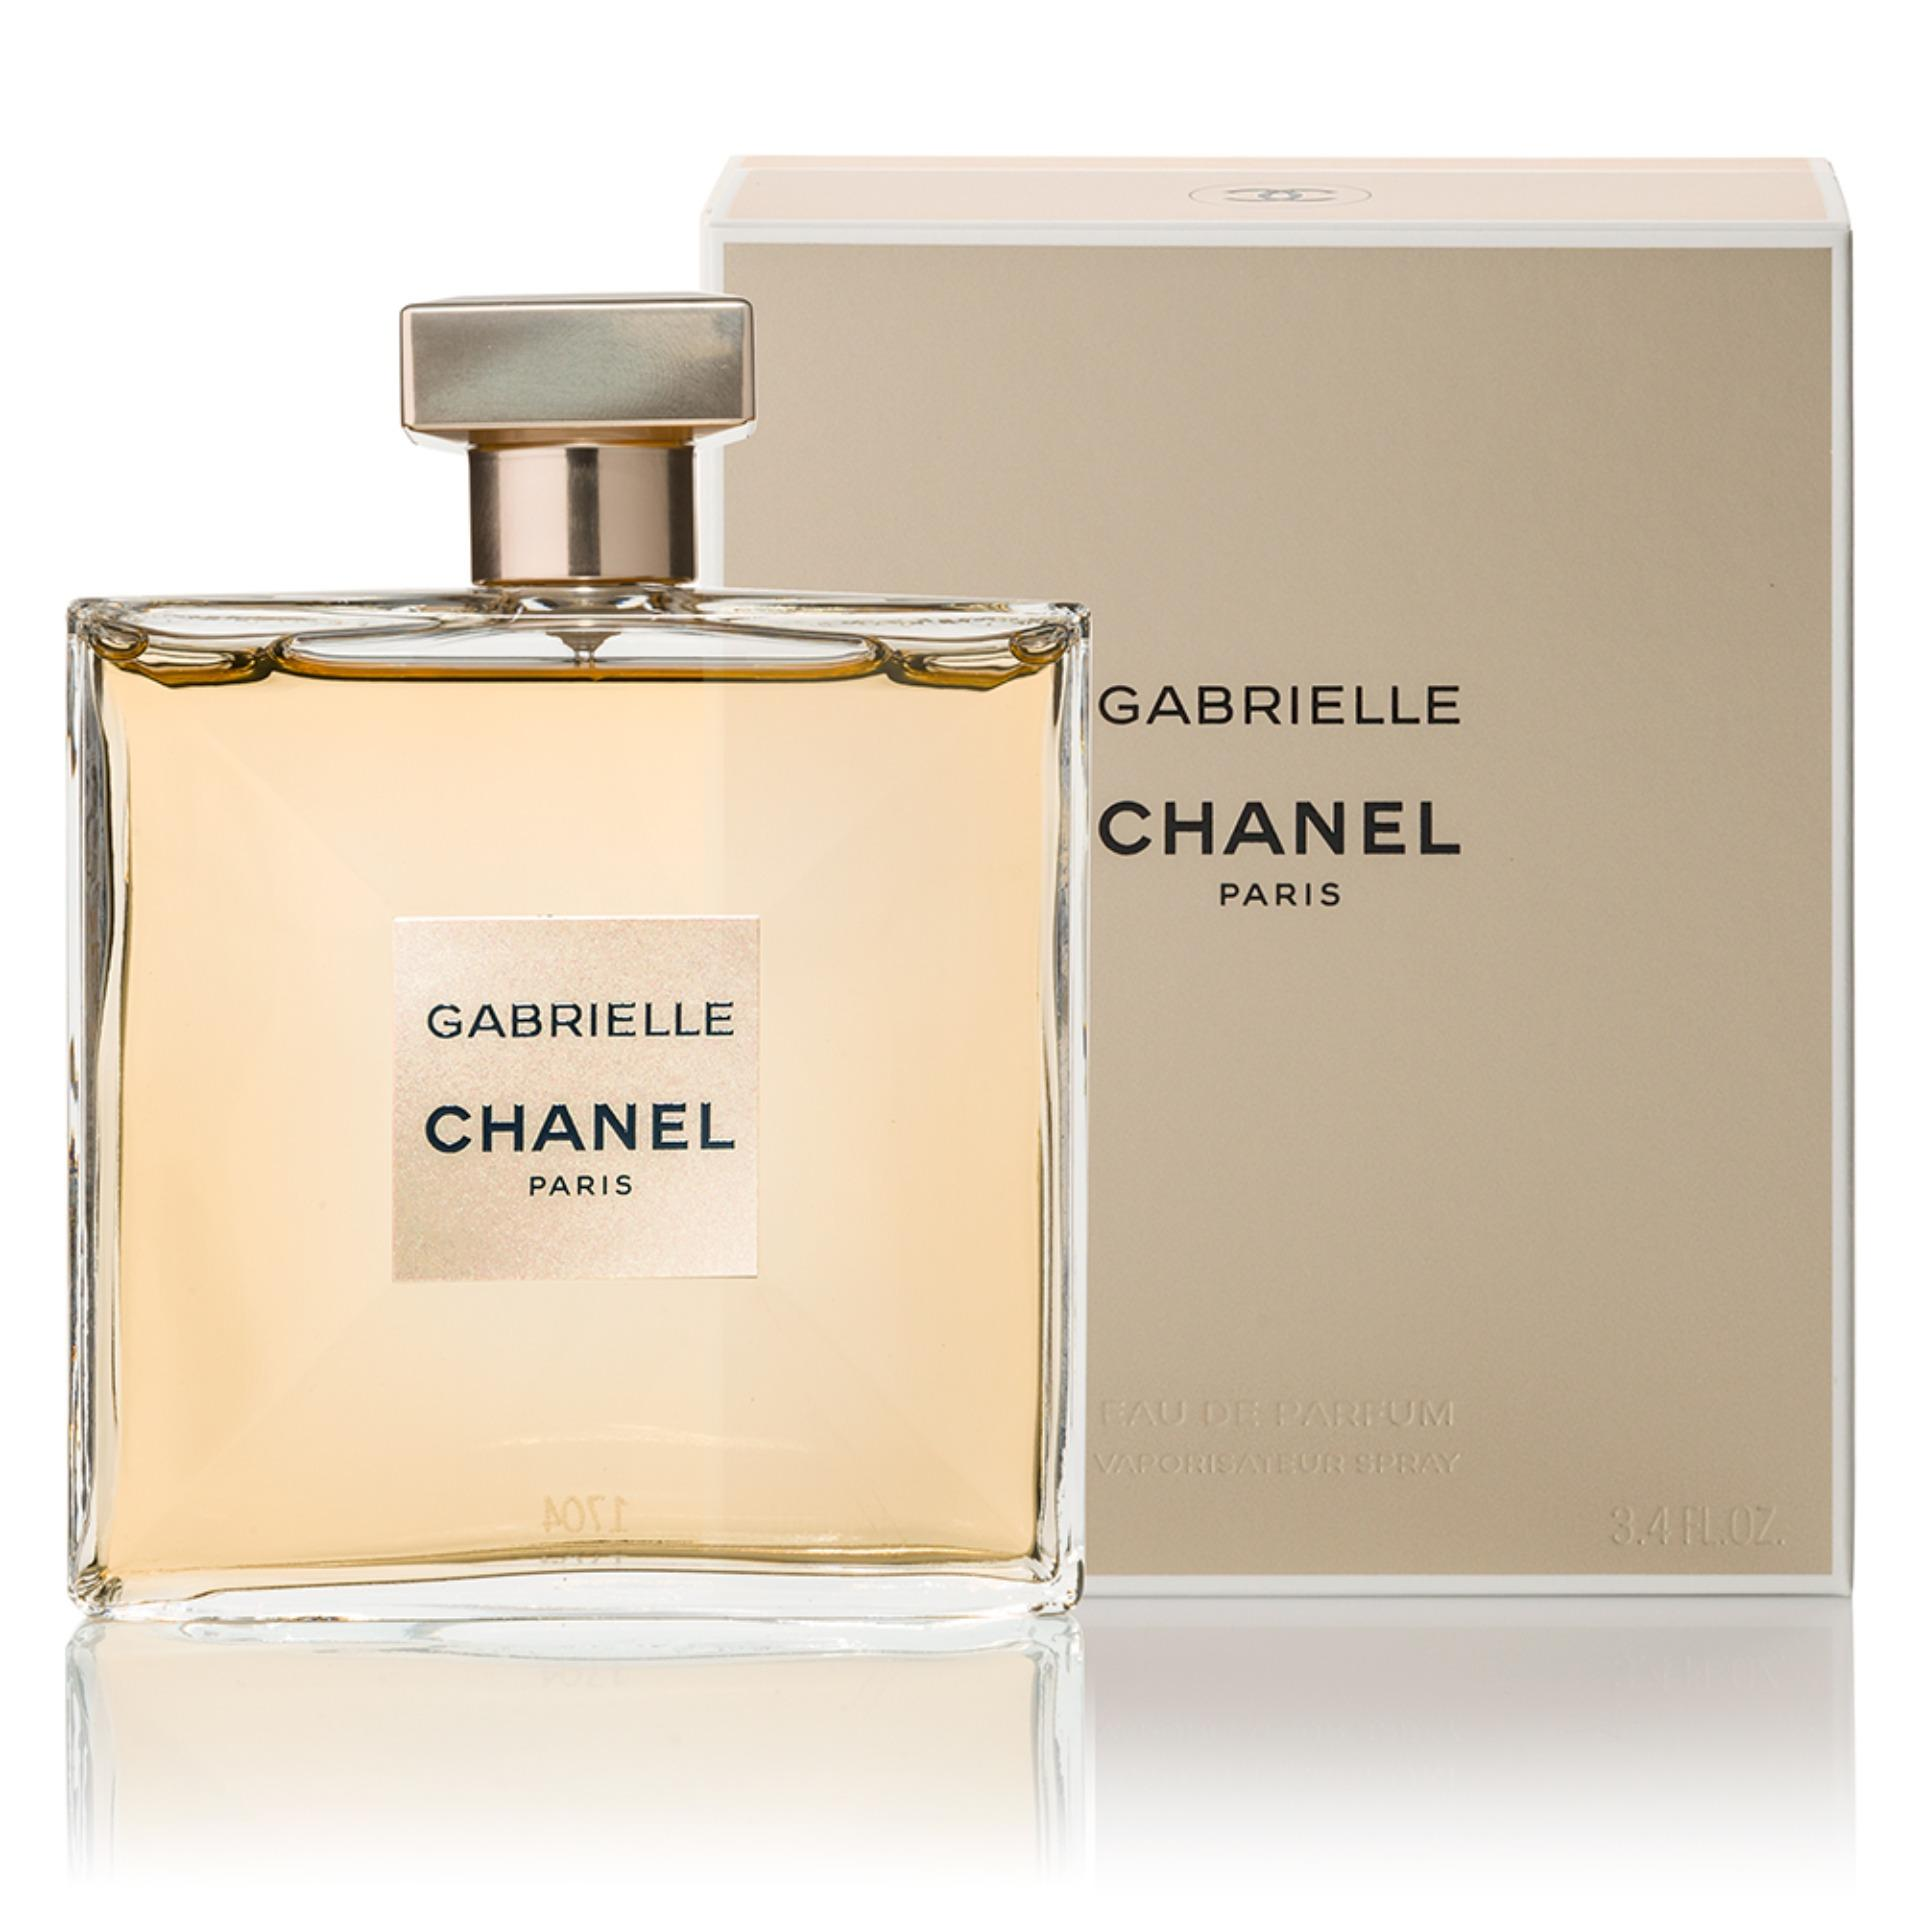 Gabrielle by Chanel for Women Eau de Parfum 100ml